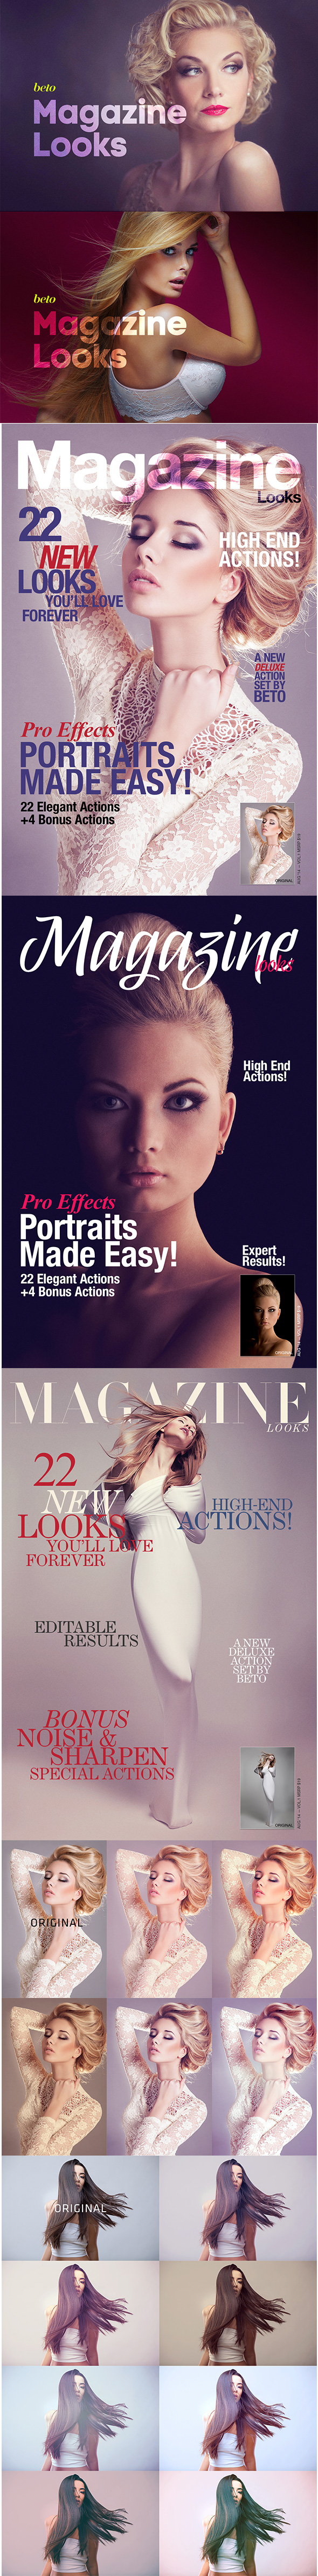 Magazine Looks Collection - Photo Effects Actions